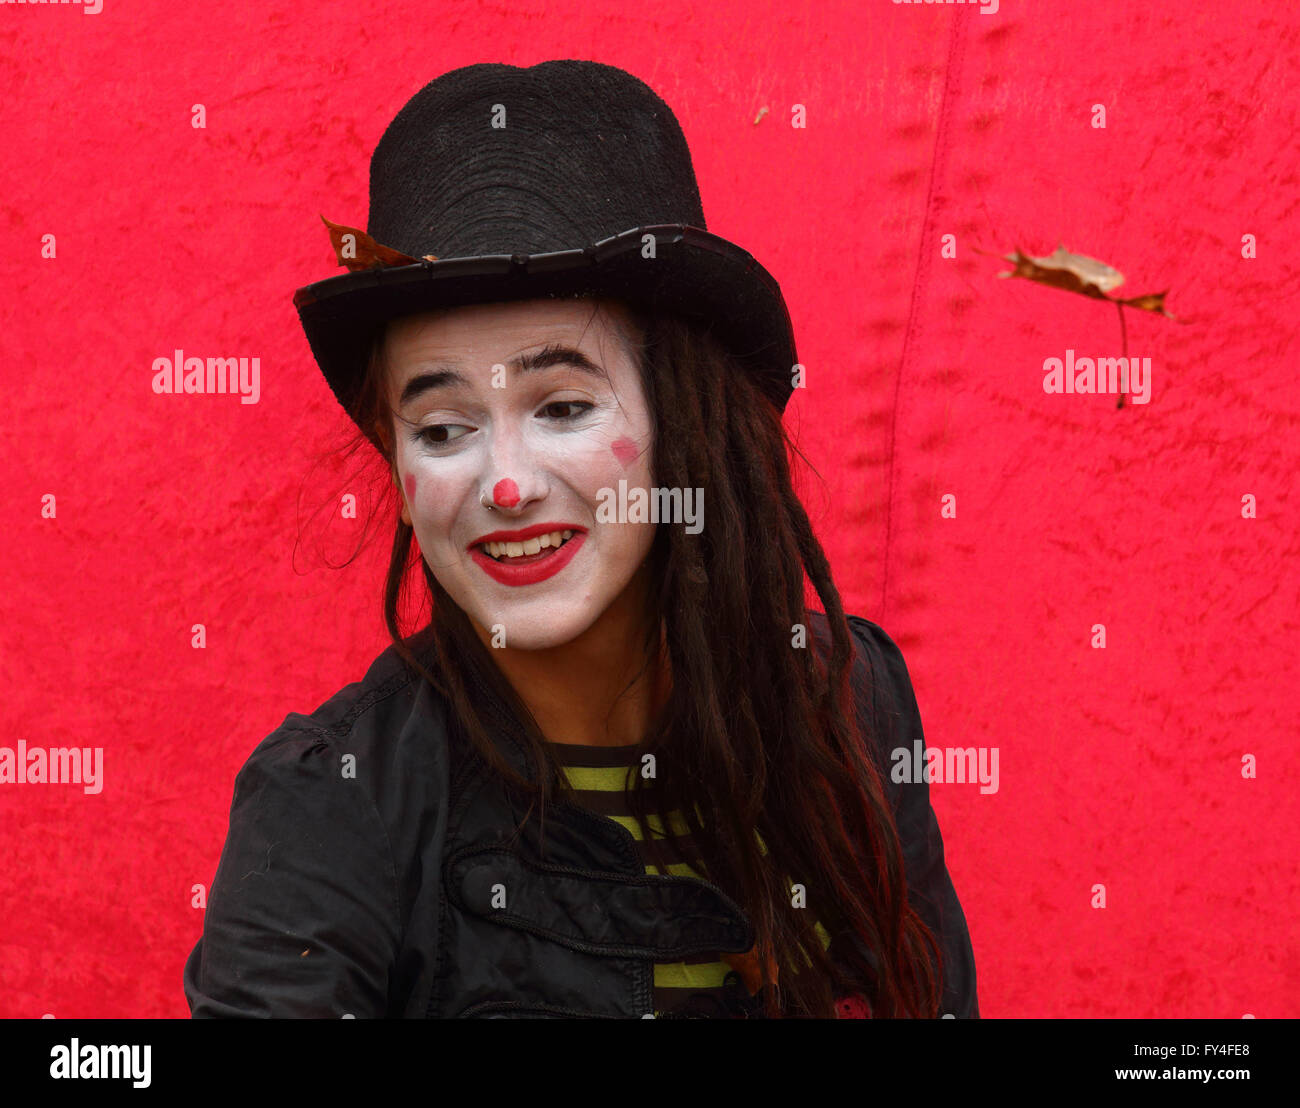 Female clown wearing top hat and make-up against a red background - Stock Image